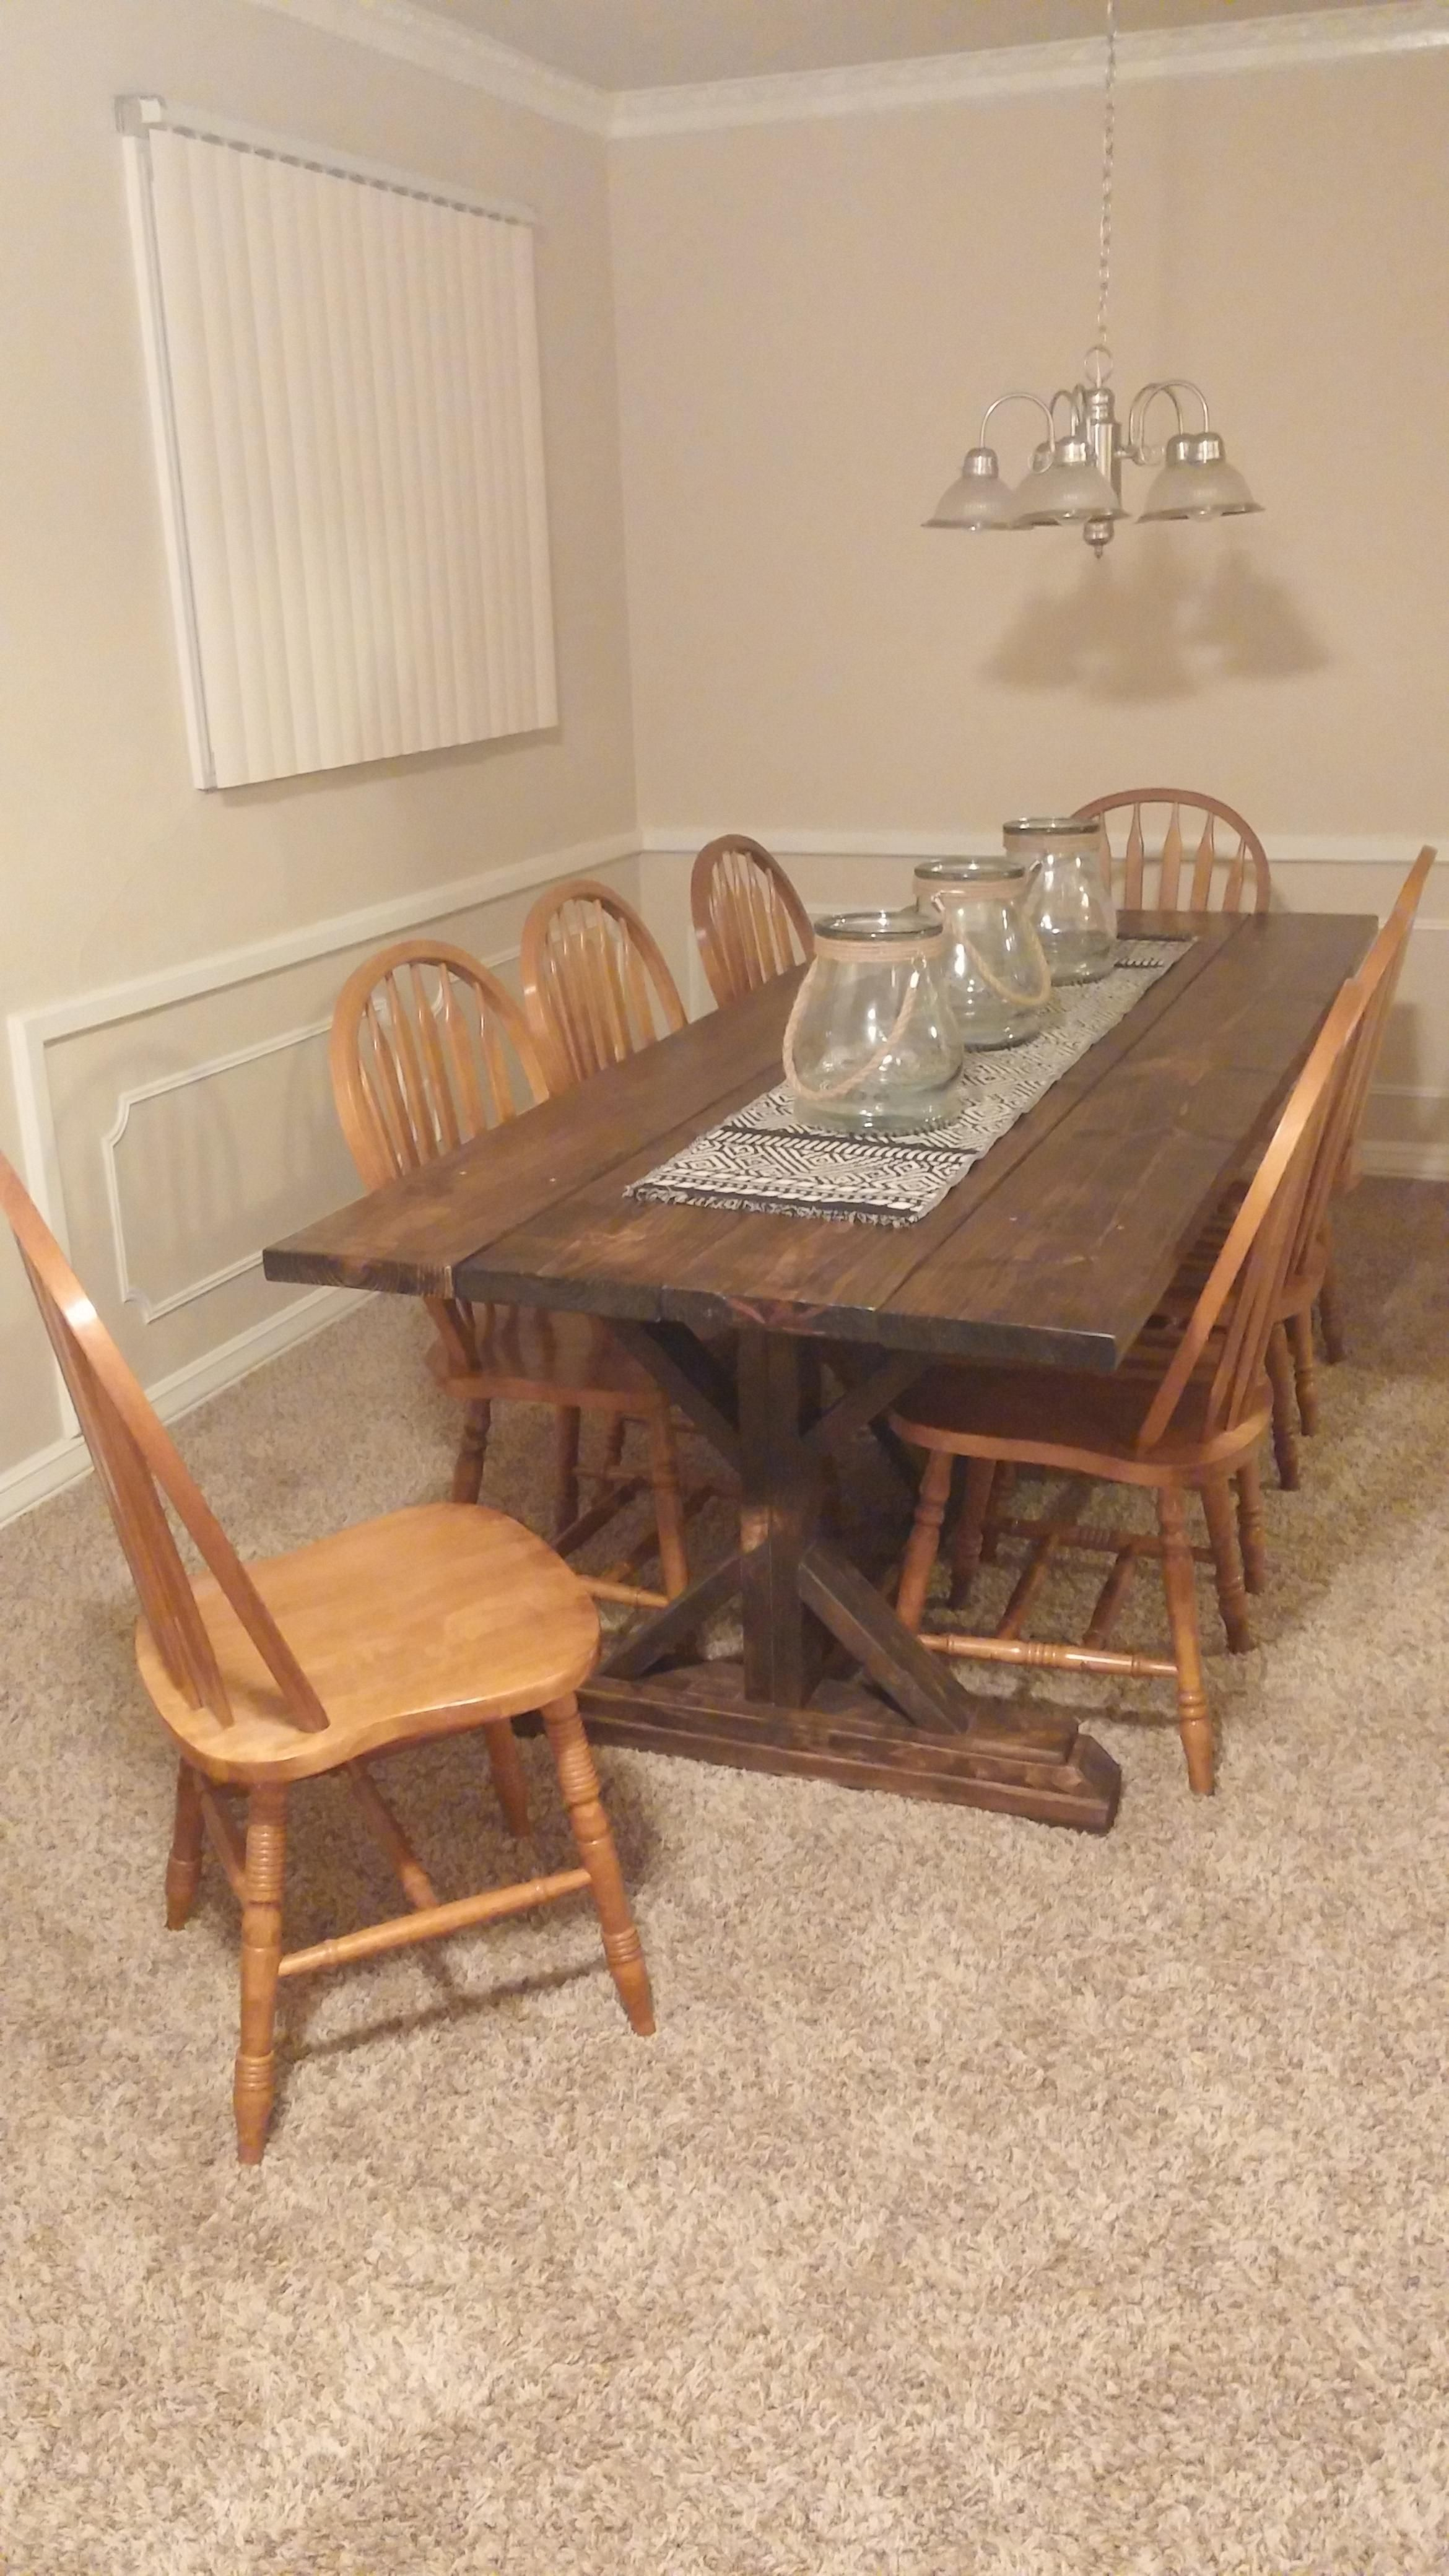 Diy Viking Banquet Table Dining Table Dining Table Decor